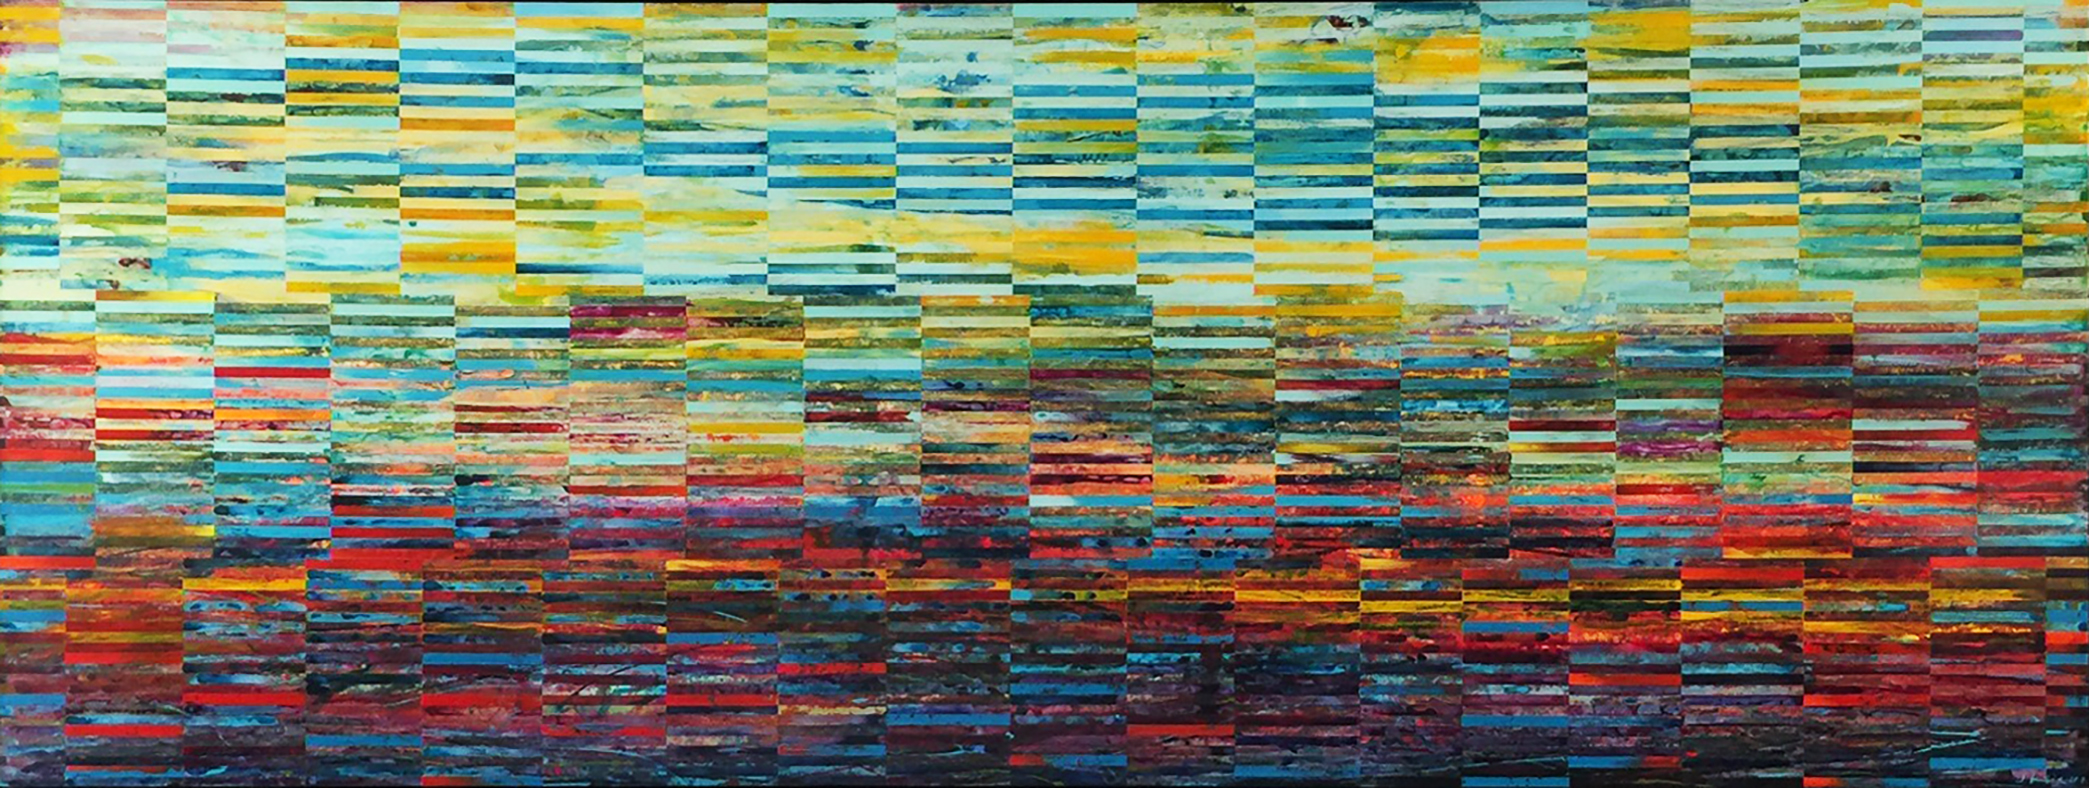 LAKE TO SKY_DNA Landscape series_141.25 x 54.75 inches_ONI ONE_Bentall Kennedy commission for TWO St Thomas condo lobby_2017